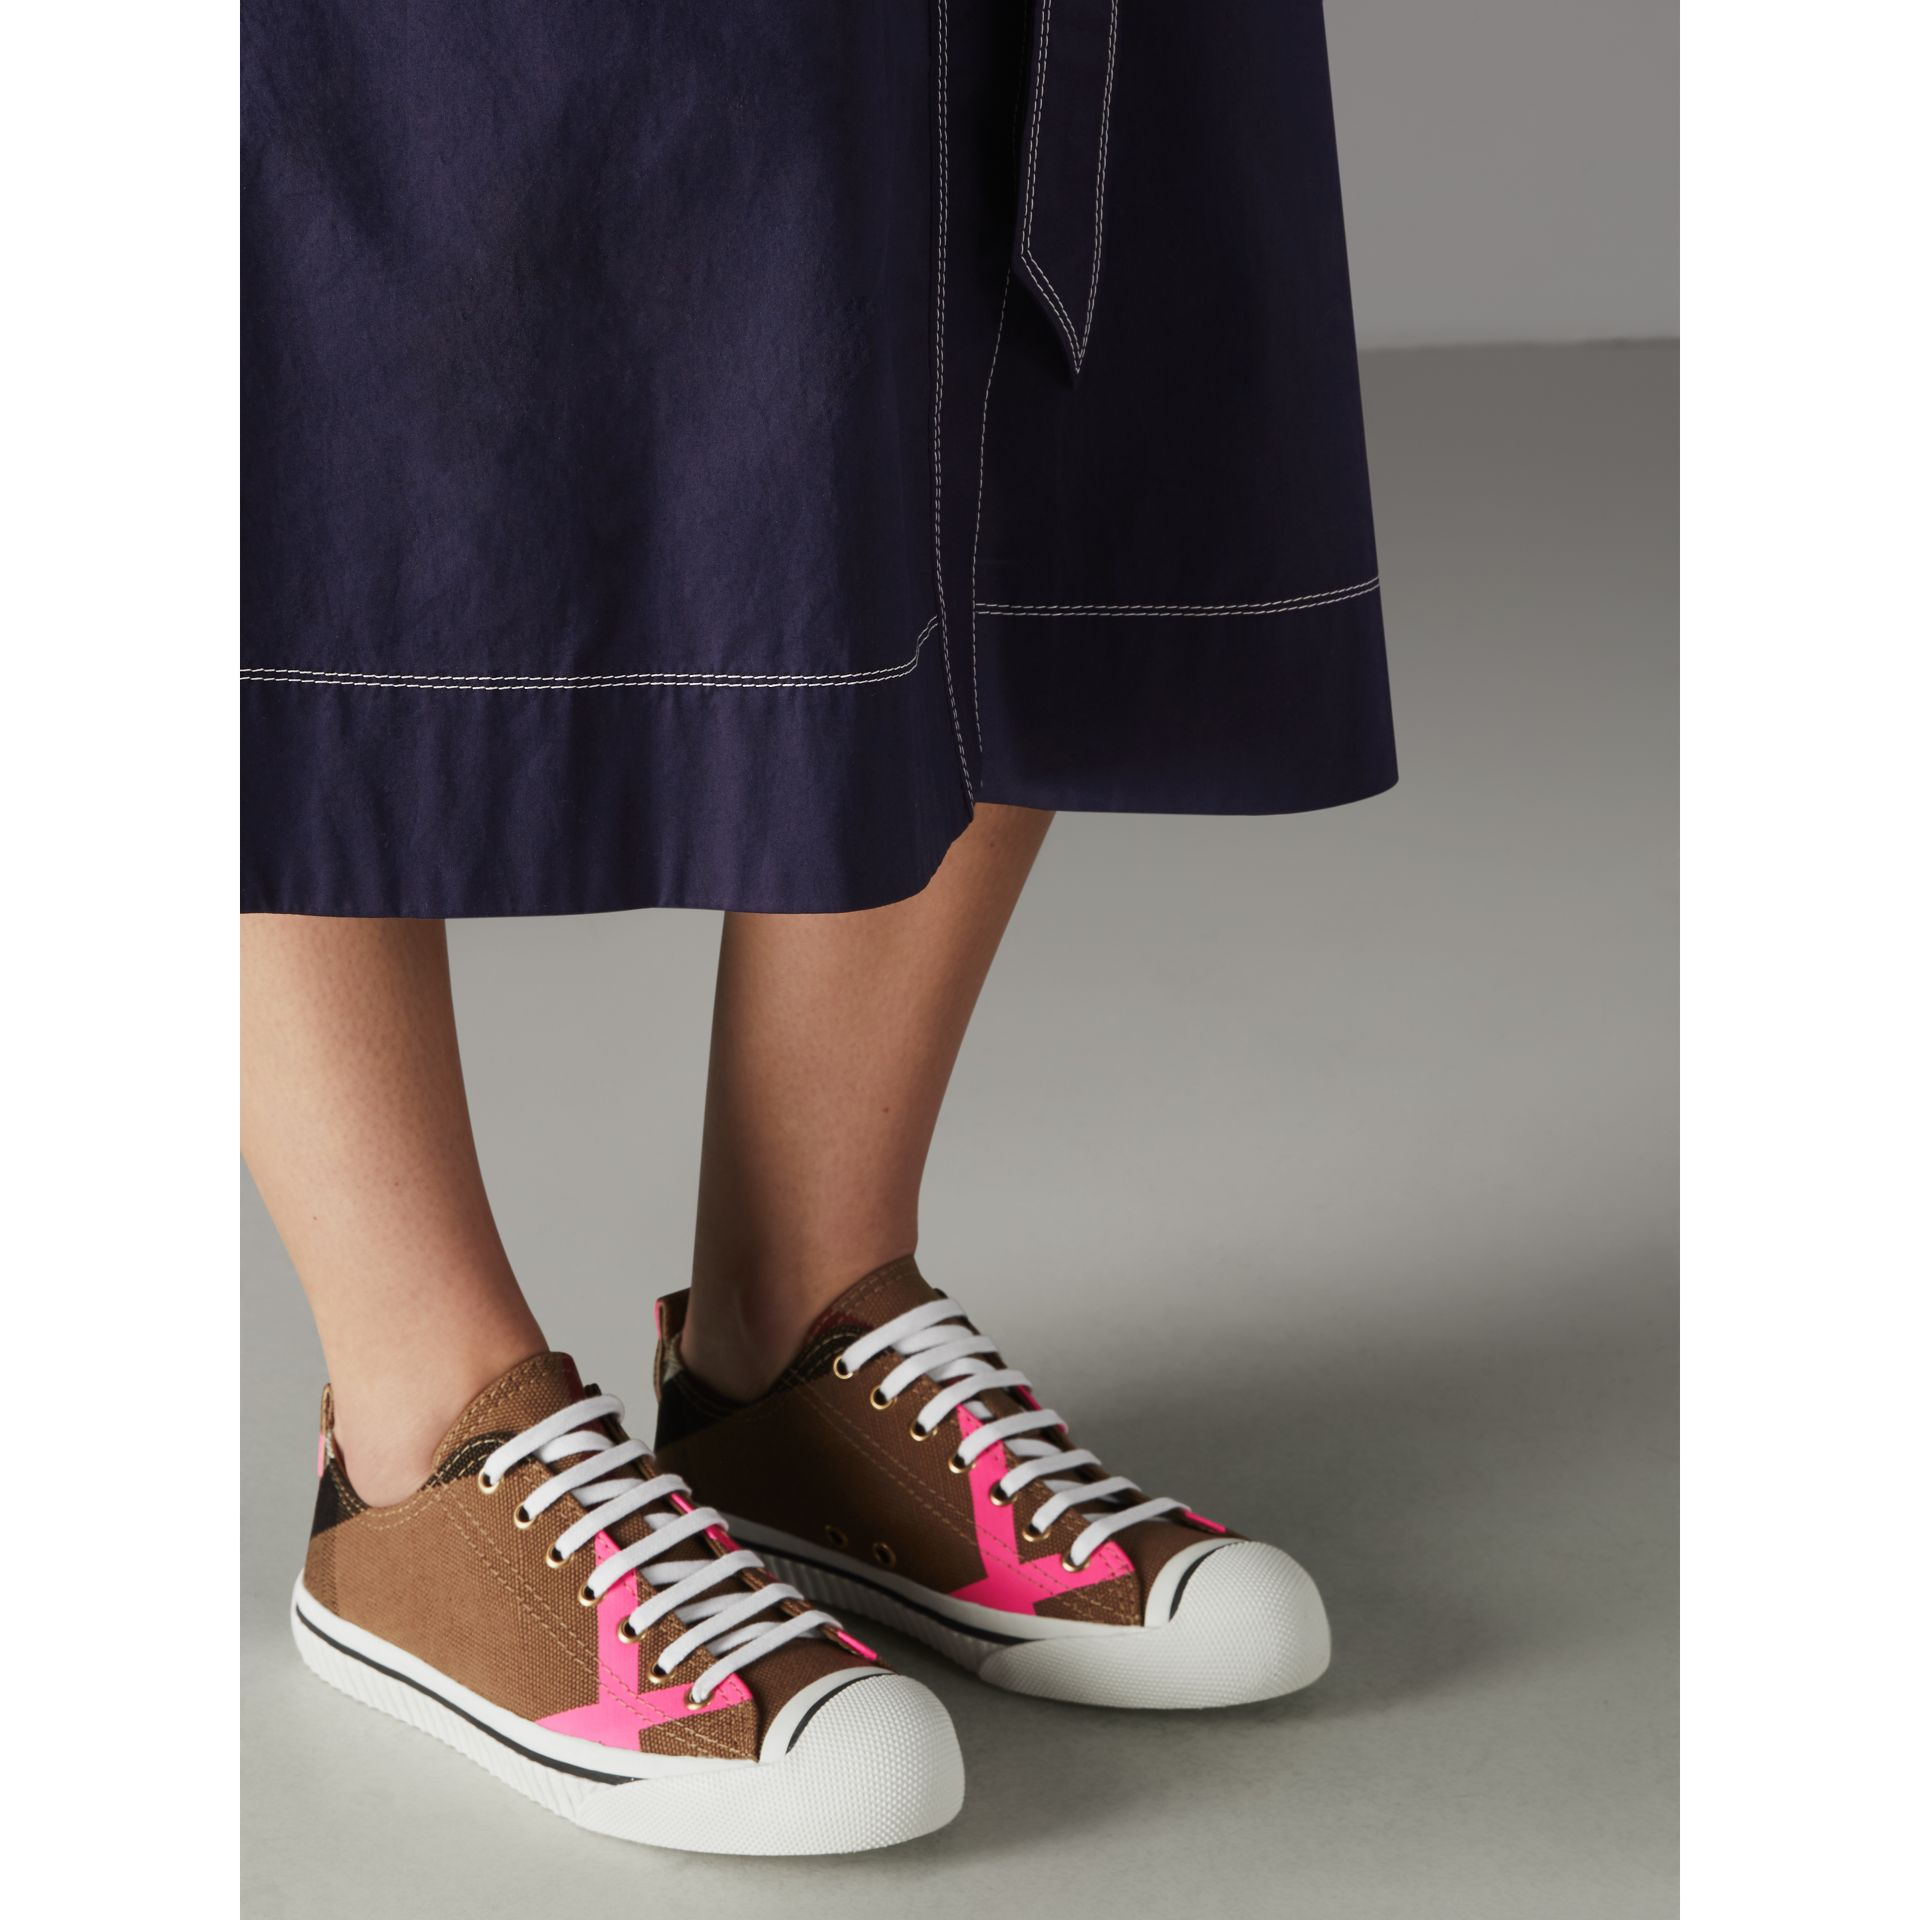 Canvas Check and Leather Sneakers in Classic/neon Pink - Women | Burberry Singapore - gallery image 2